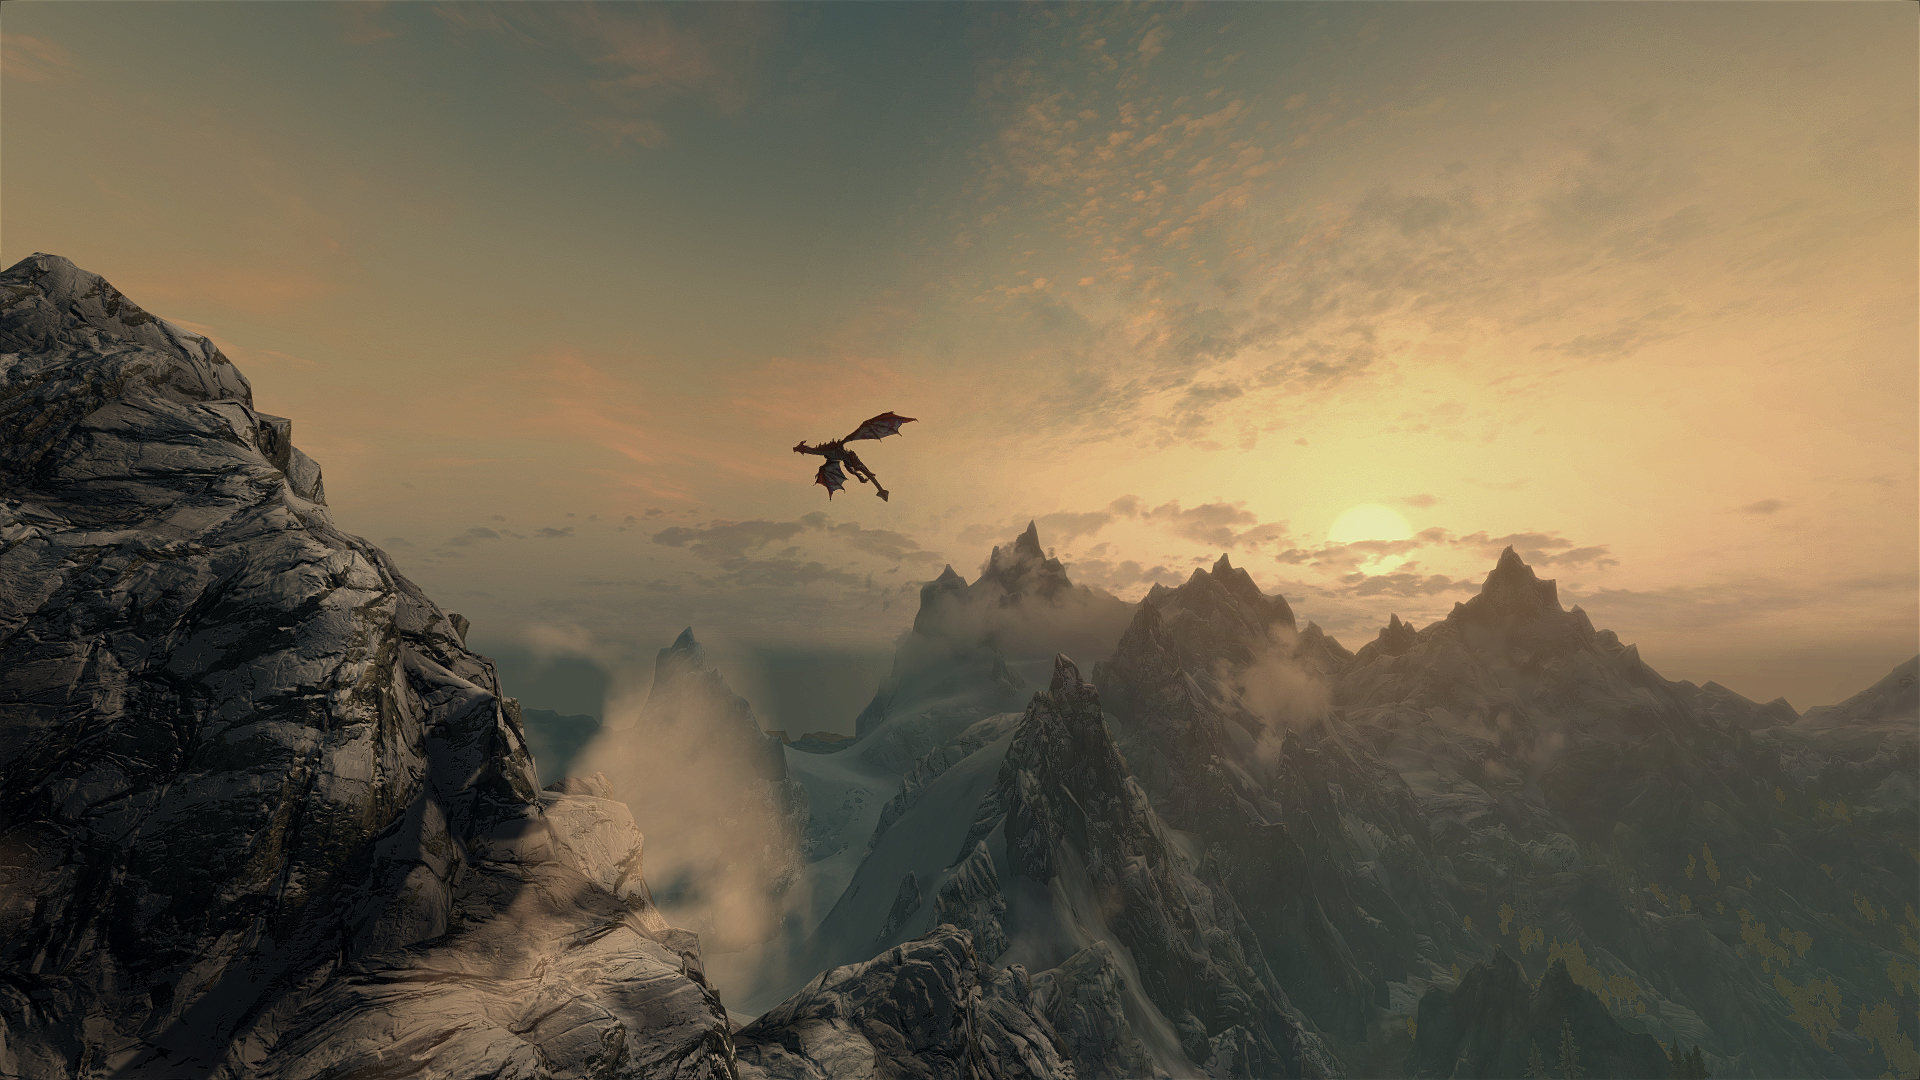 19399 download wallpaper Fantasy, Sunset, Mountains, Dragons screensavers and pictures for free